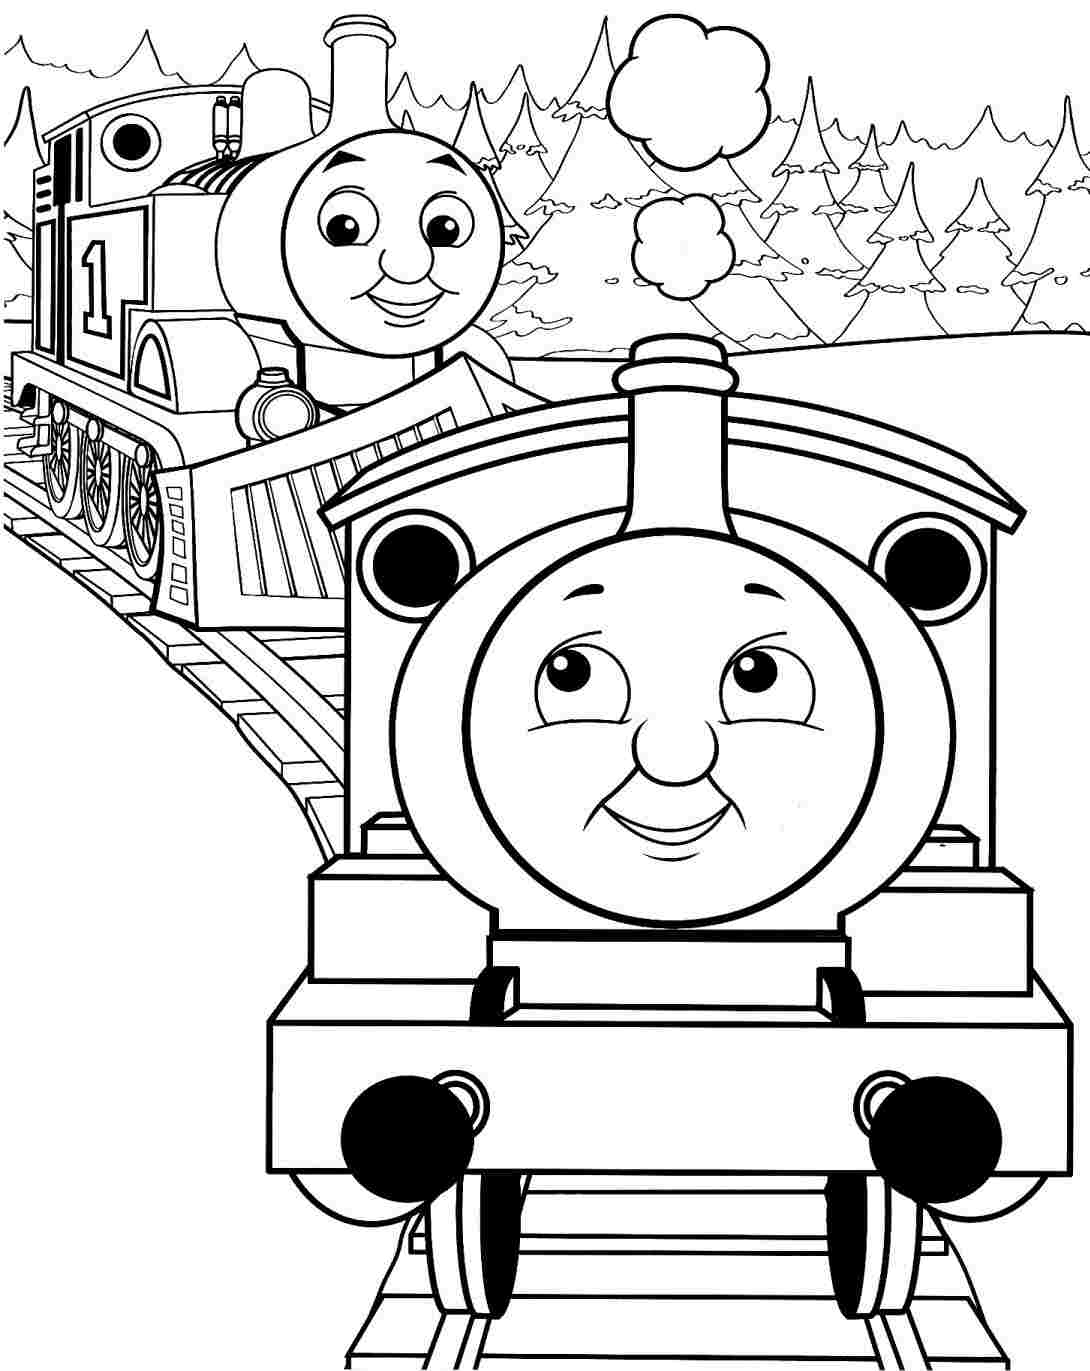 Train Outline Drawing At Getdrawings